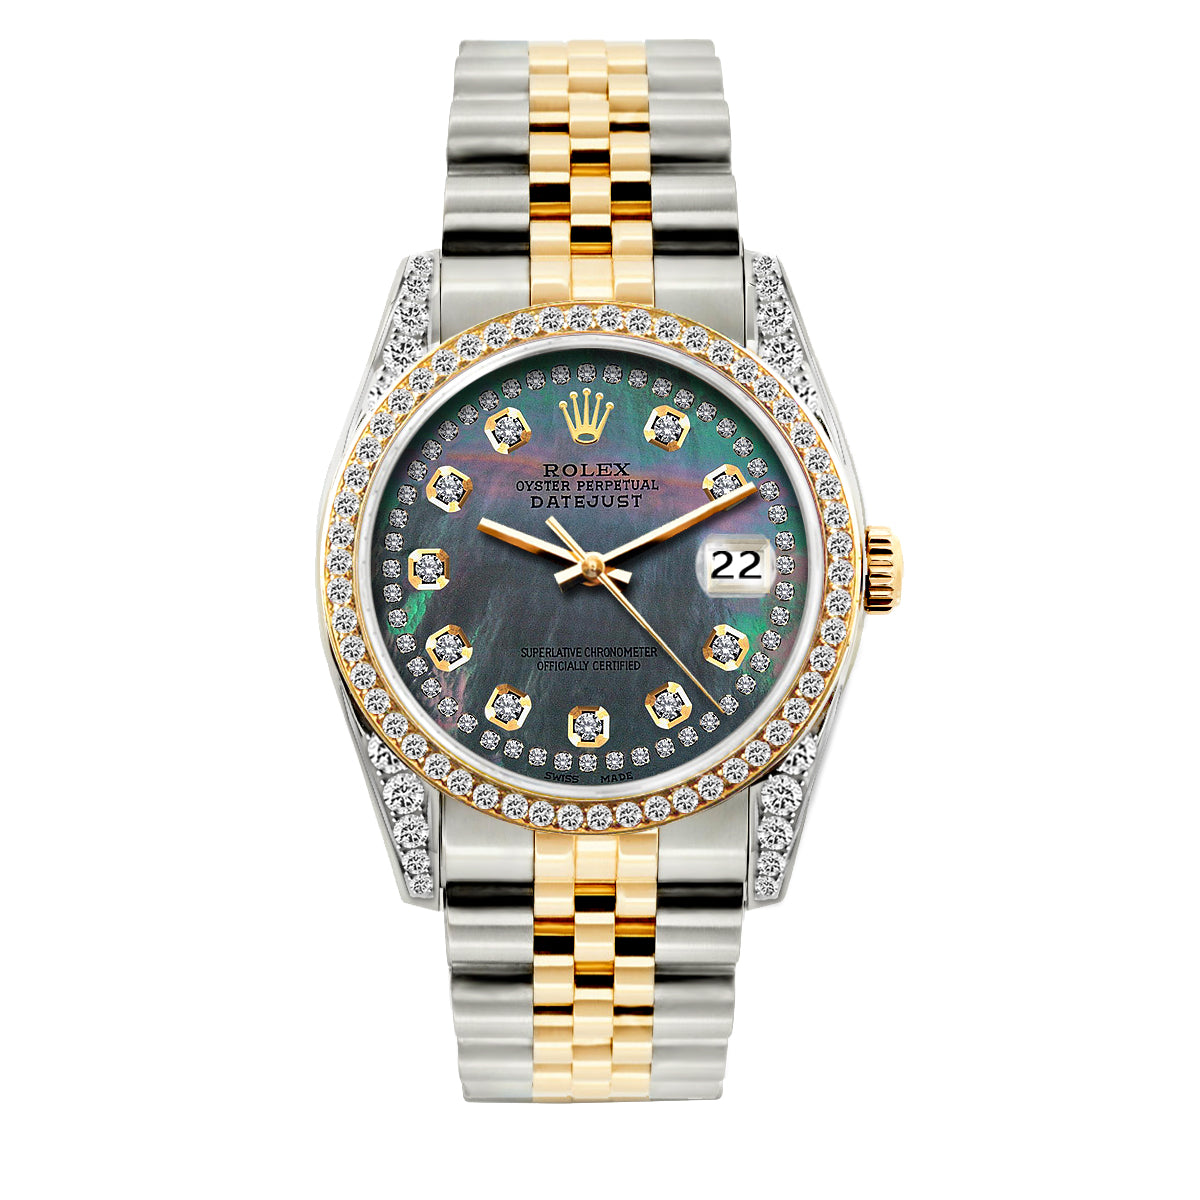 Rolex Datejust Diamond Watch, 36mm, Yellow Gold and Stainless Steel Bracelet Mother of Pearl Dial w/ Diamond Bezel and Lugs